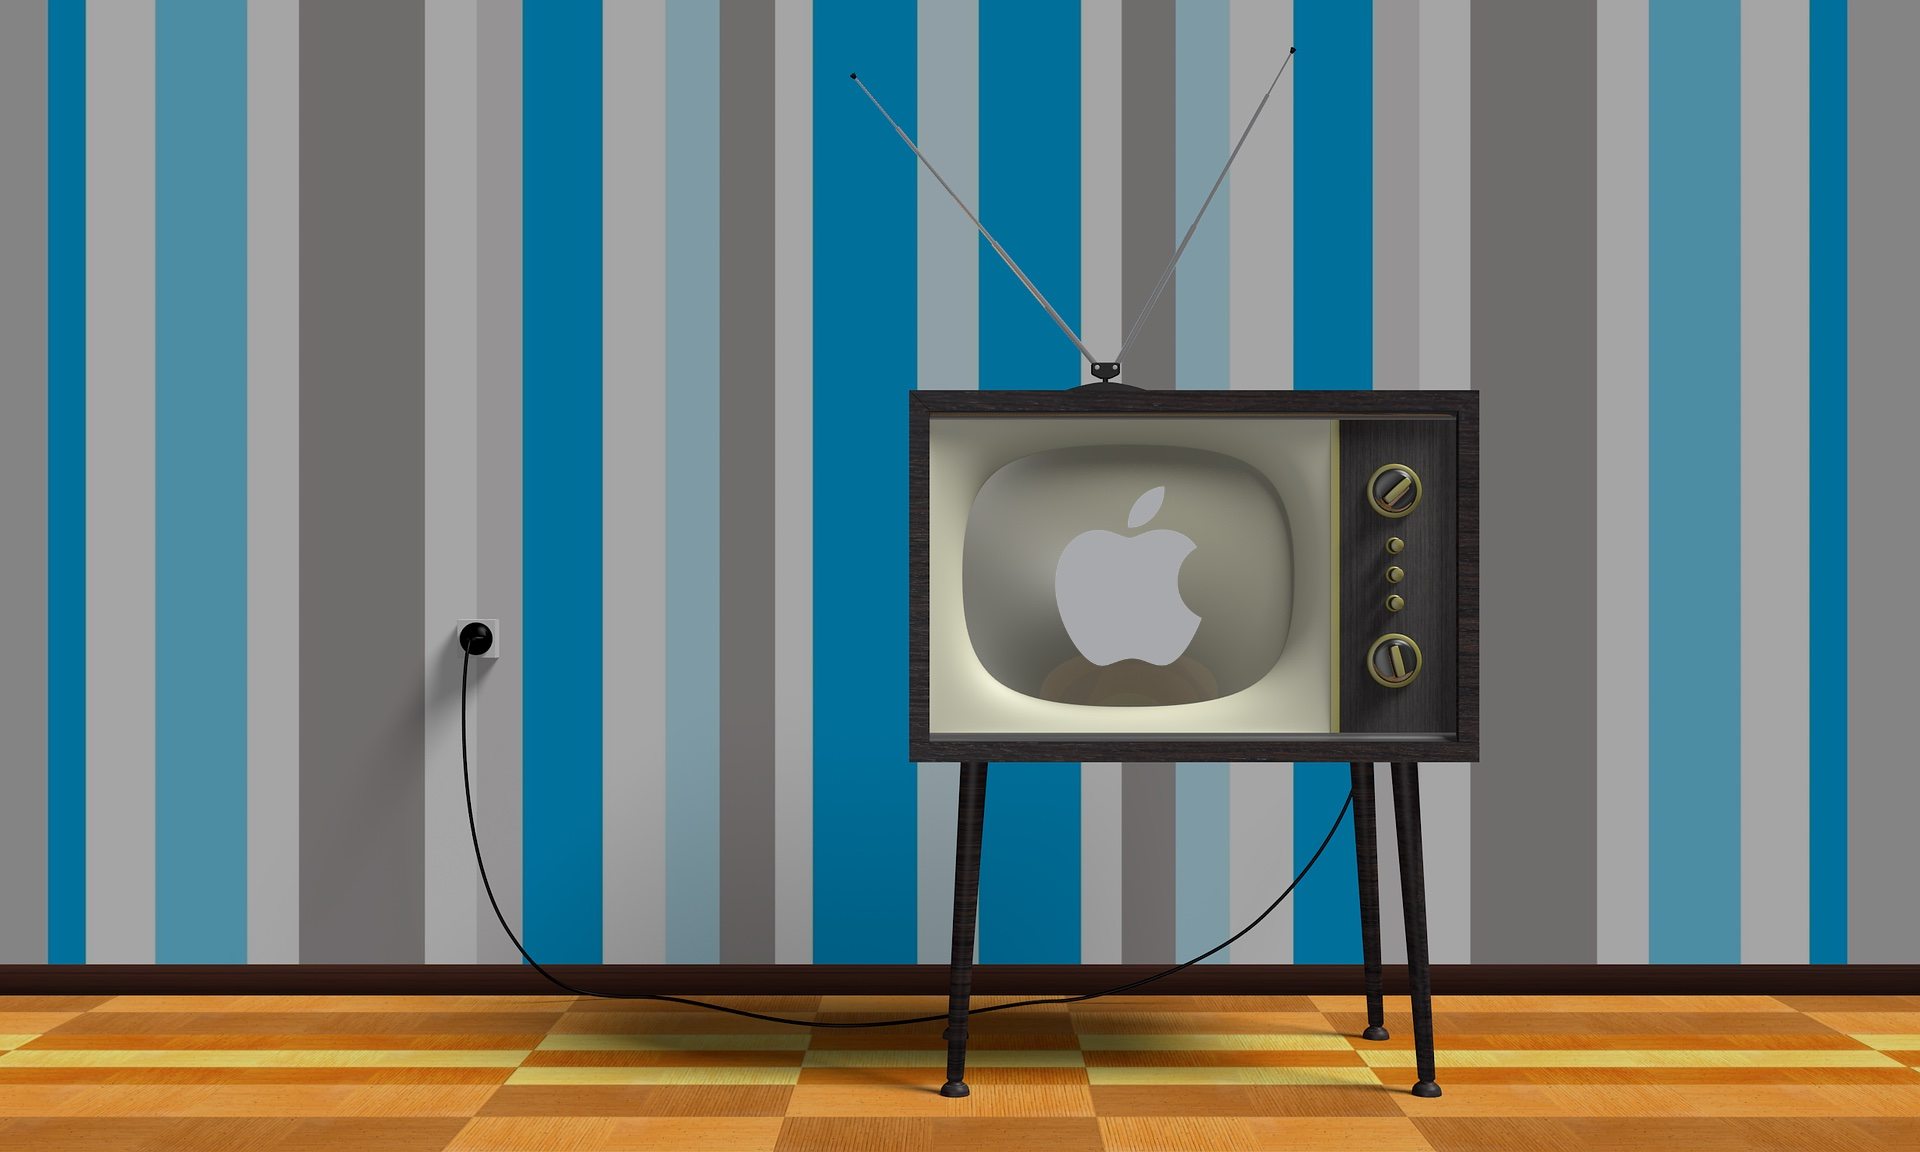 Apple Original TV Programs: Apple Lands Isaac Asimov 'Foundation' Series